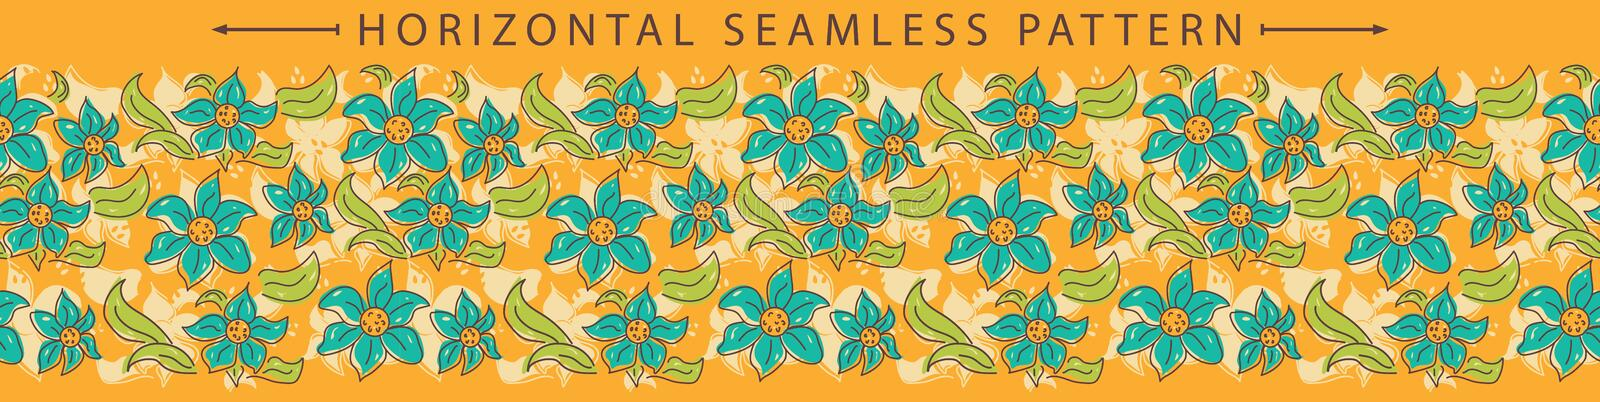 Vector horizontal seamless border with beautiful floral element. Holiday background. Great for wallpaper, backgrounds, packaging, fabric, scrapbooking, and royalty free illustration